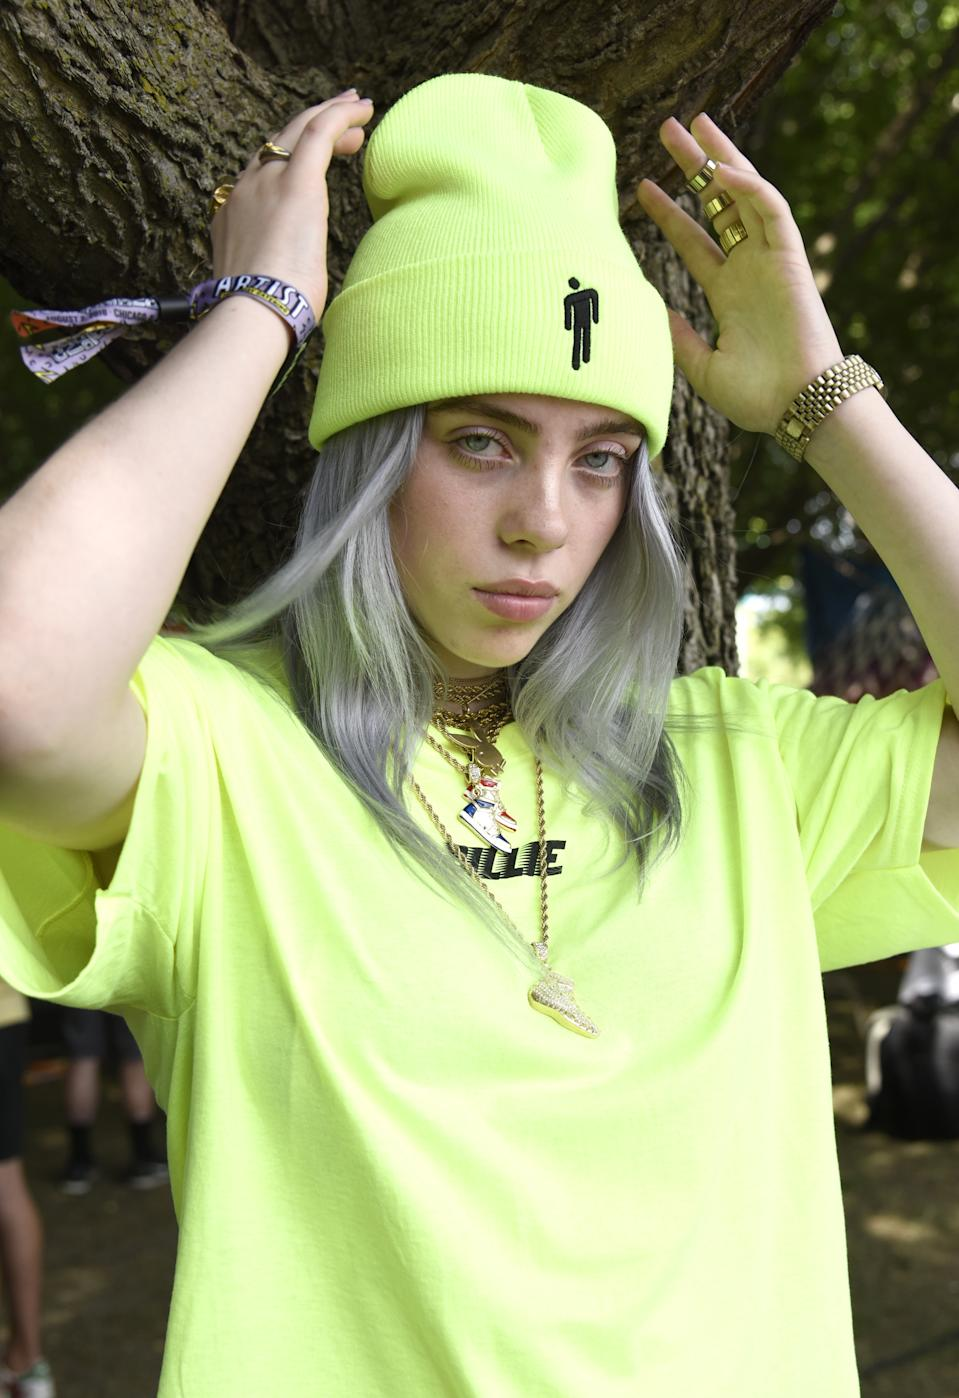 Billie Eilish poses during Lollapalooza 2018 at Grant Park on August 2, 2018 in Chicago, Illinois.